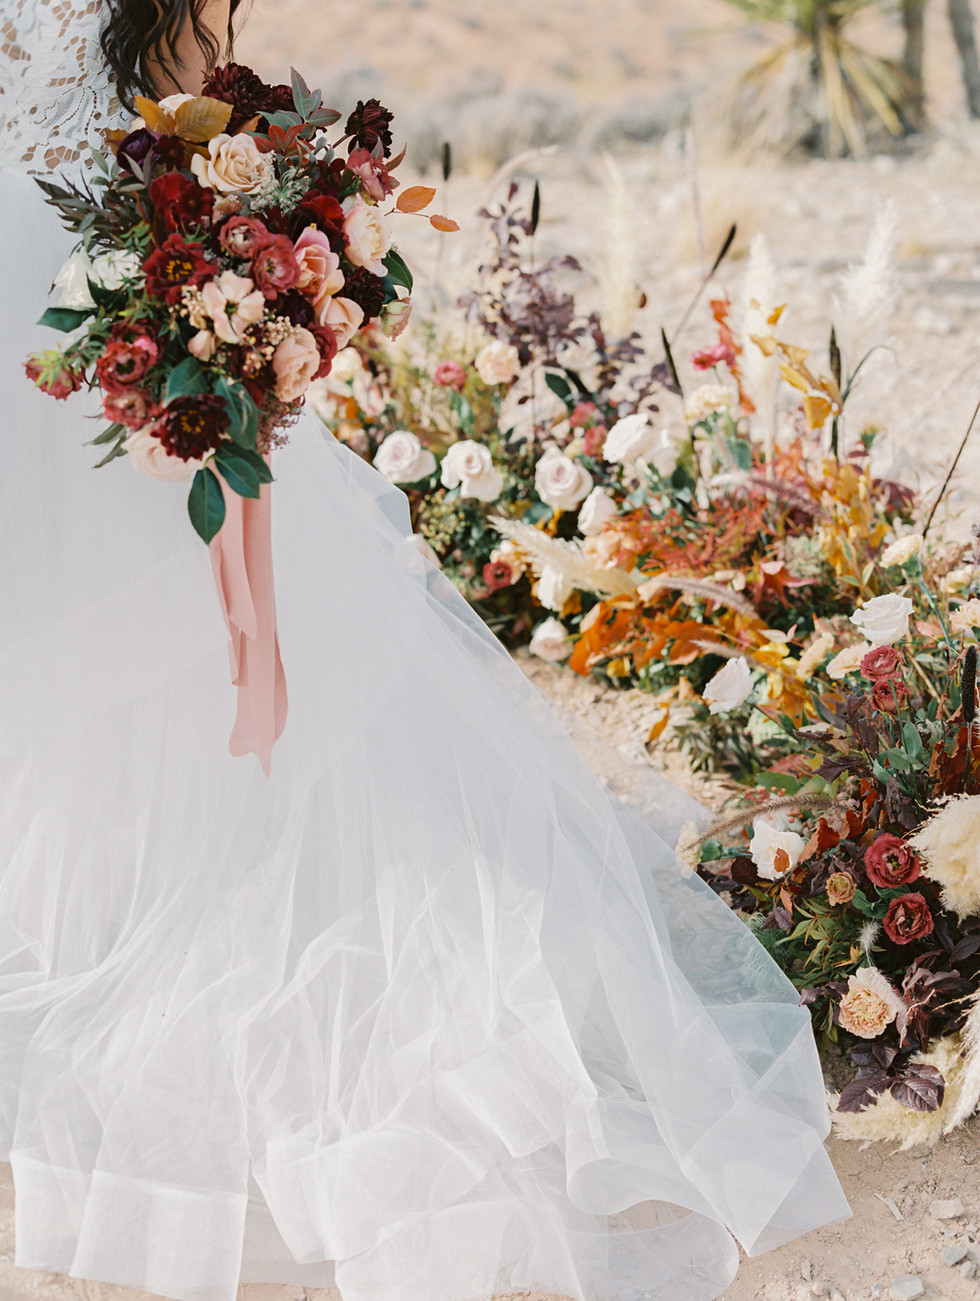 Ceremony florals with pampas grass, cat tails, dahlias, and fall leaves, in shades of burnt orange, burgundy, and ivory. Photo: Gaby Jeter